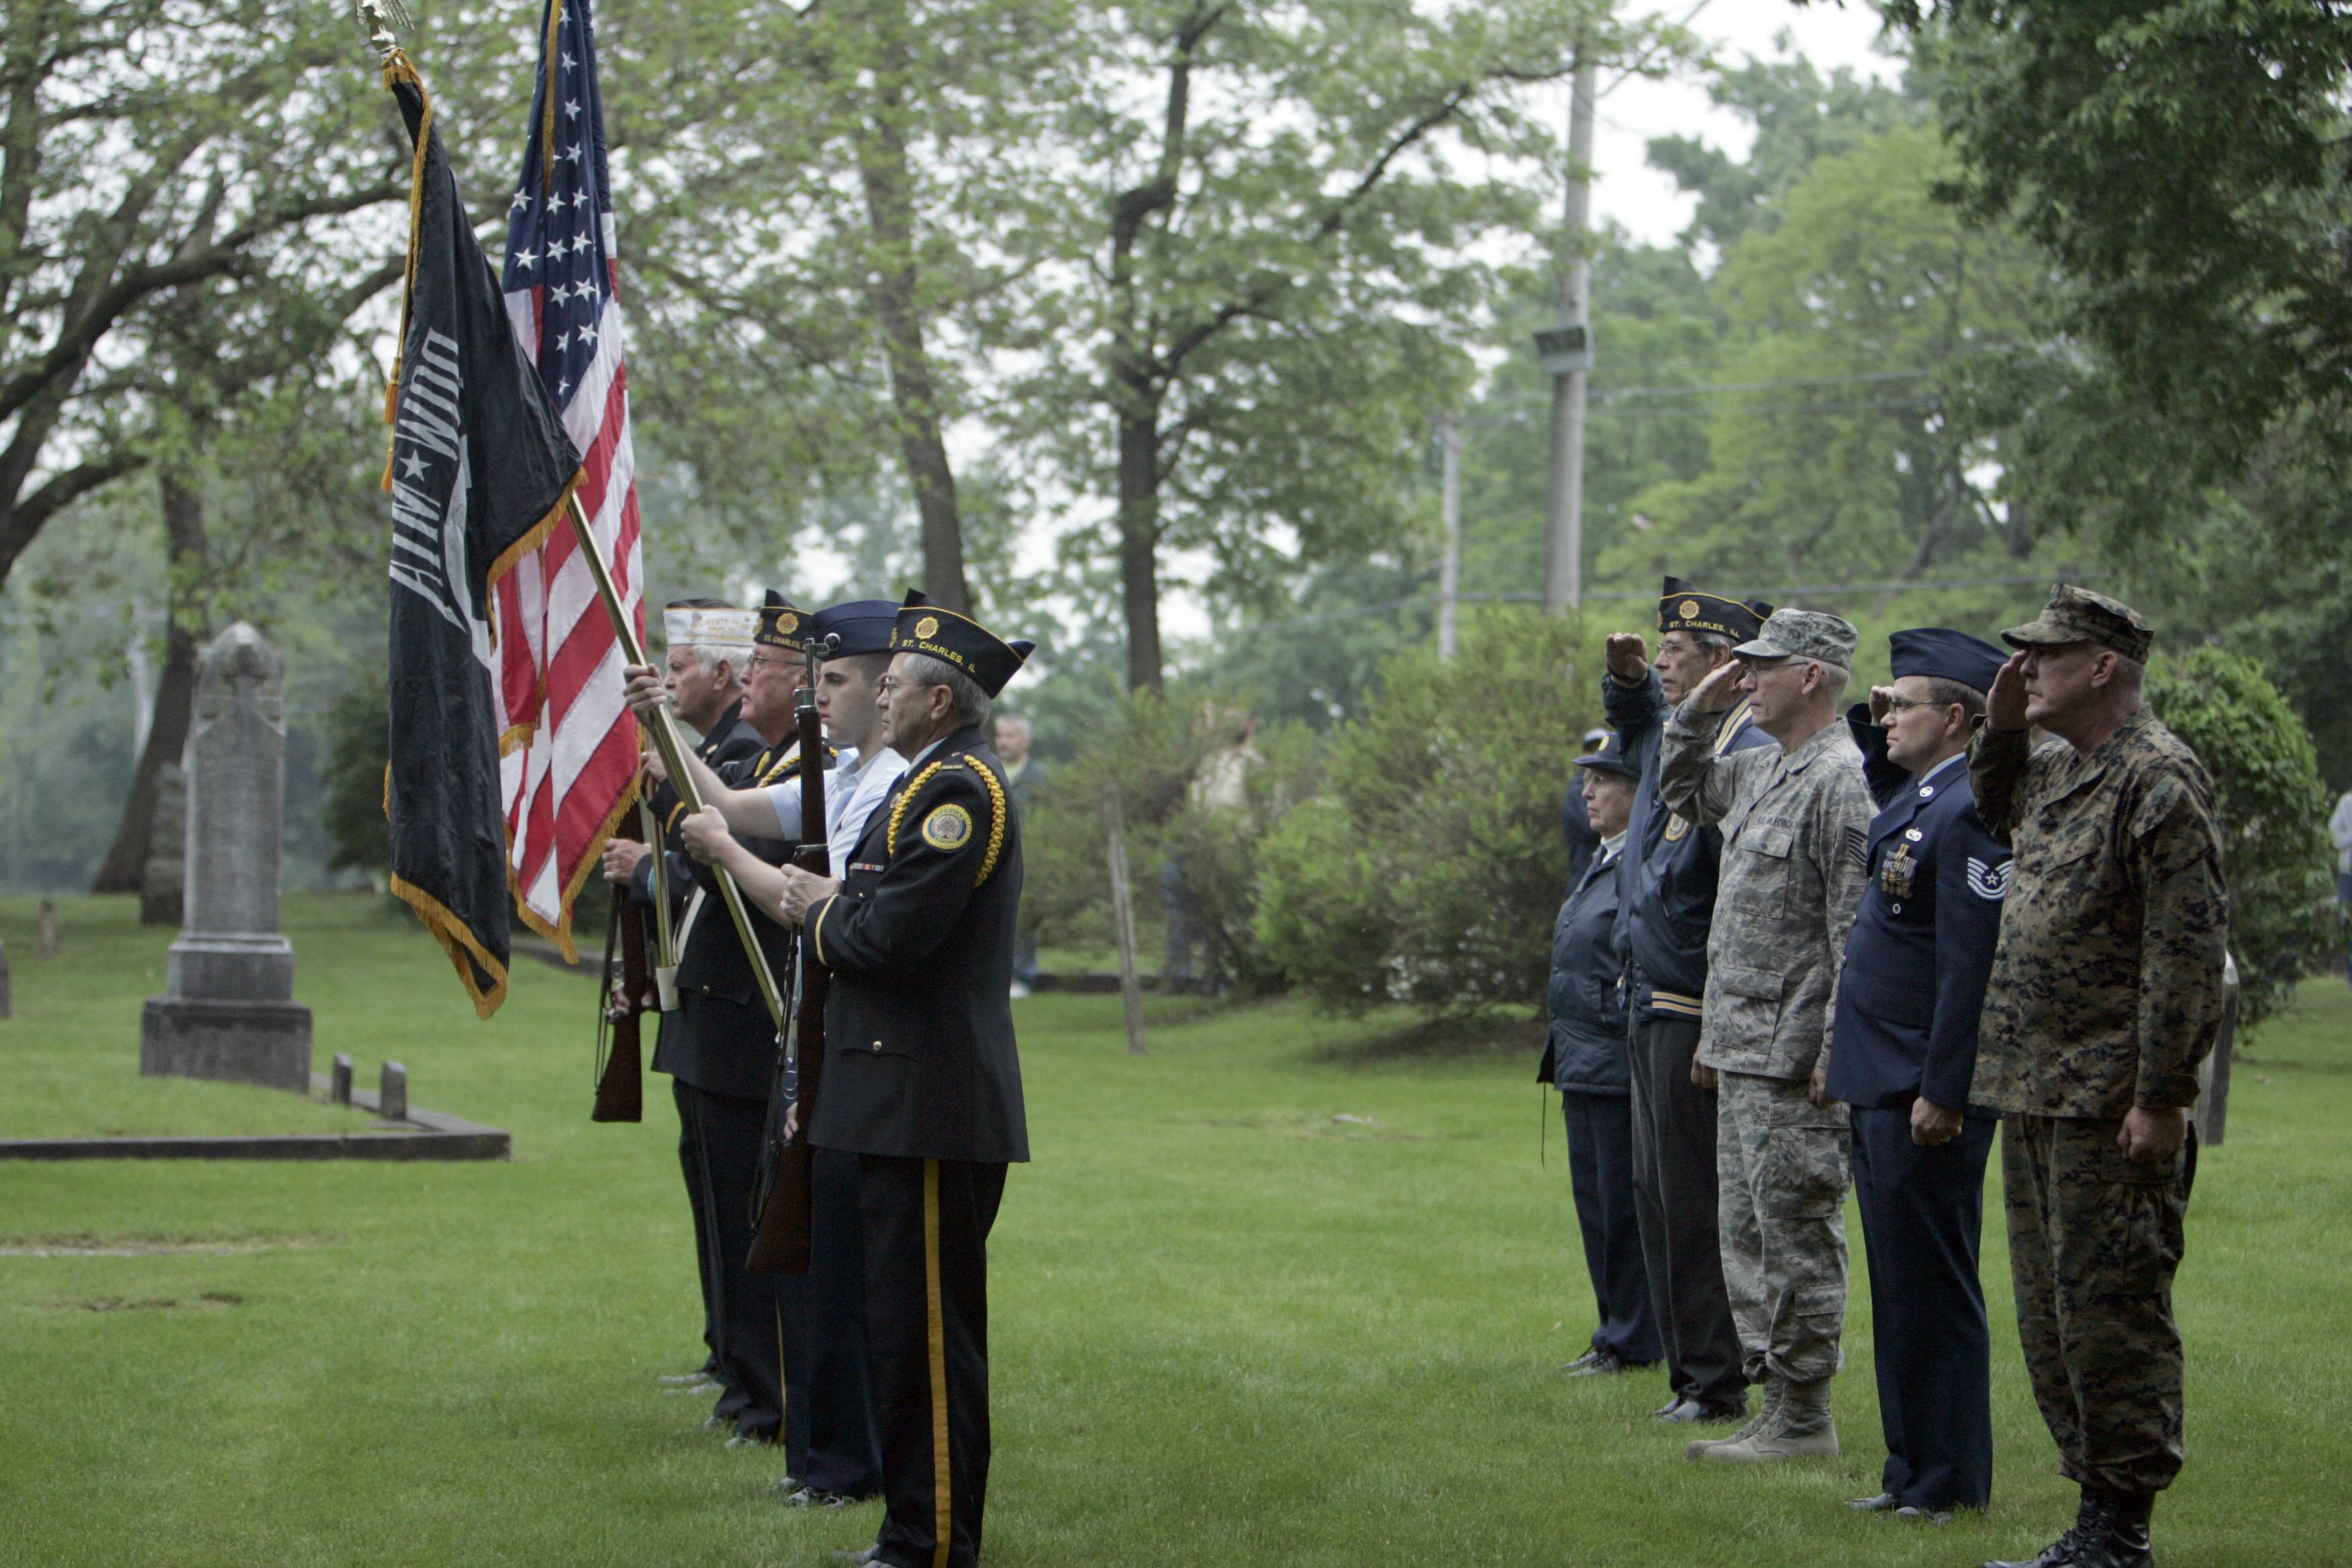 The color guard presents the colors during a previous Memorial Day ceremony at South Cemetery in St. Charles.